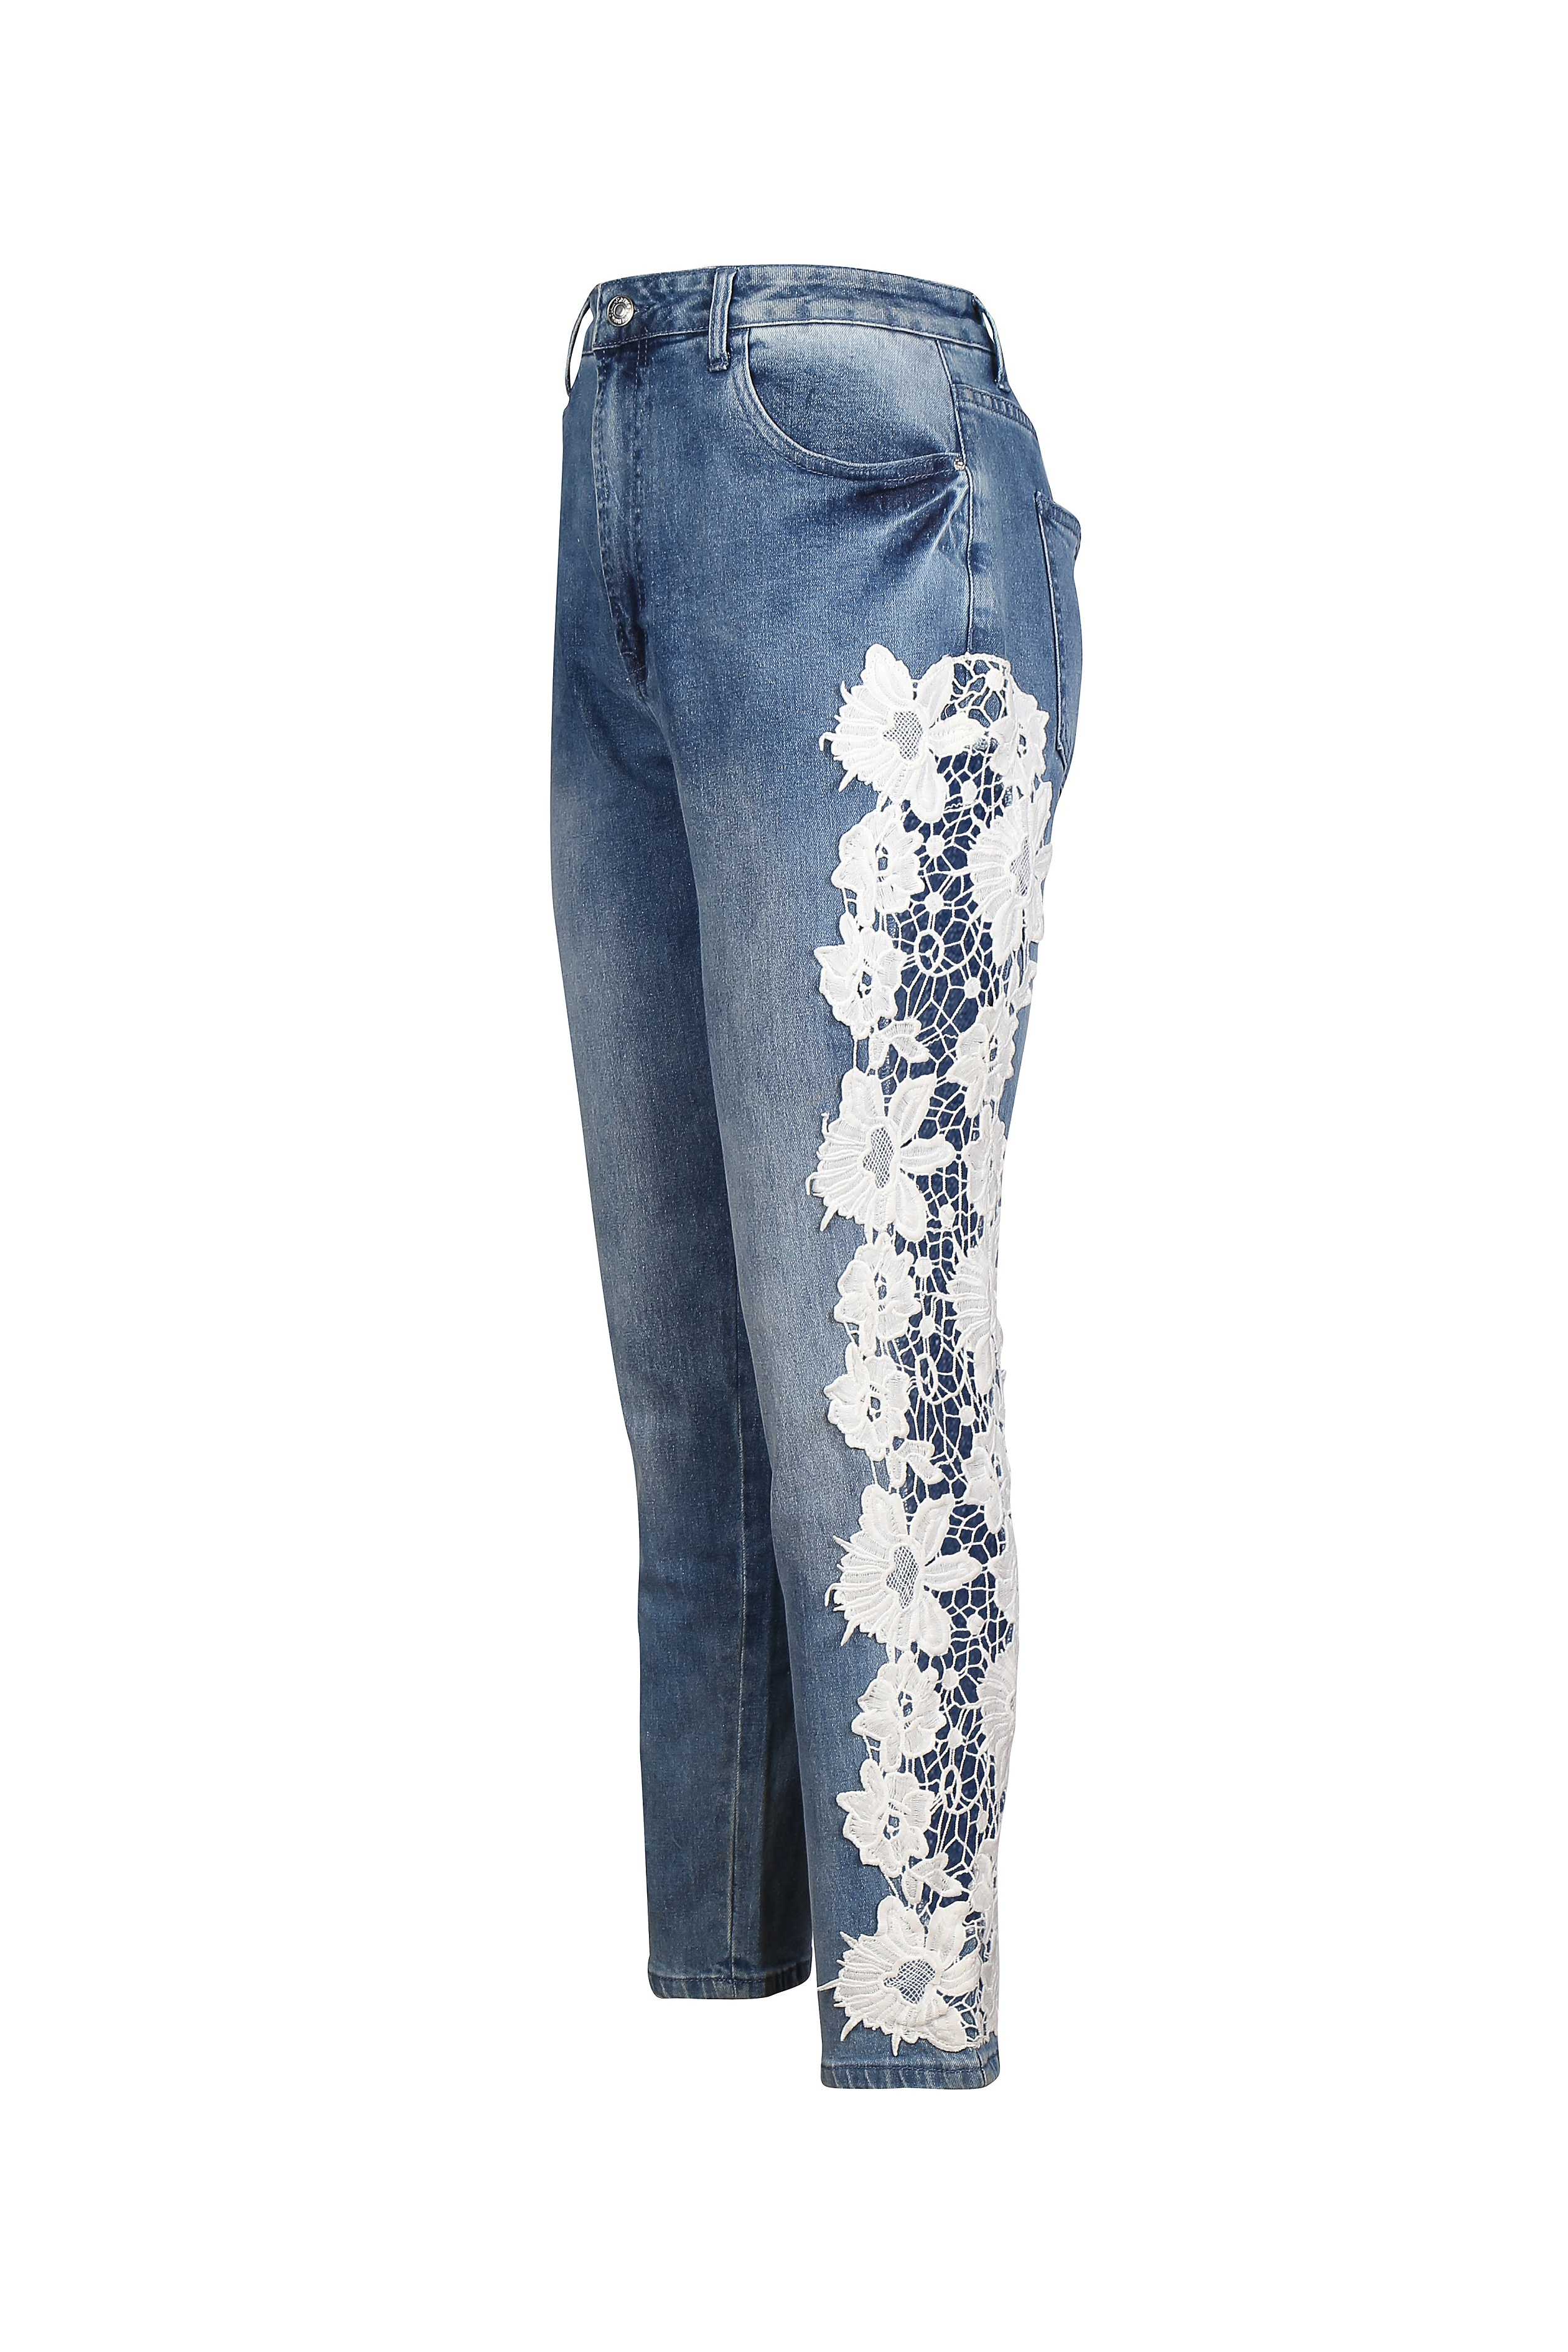 Navy blue jeans with white lace detail for women - Rs. 2249